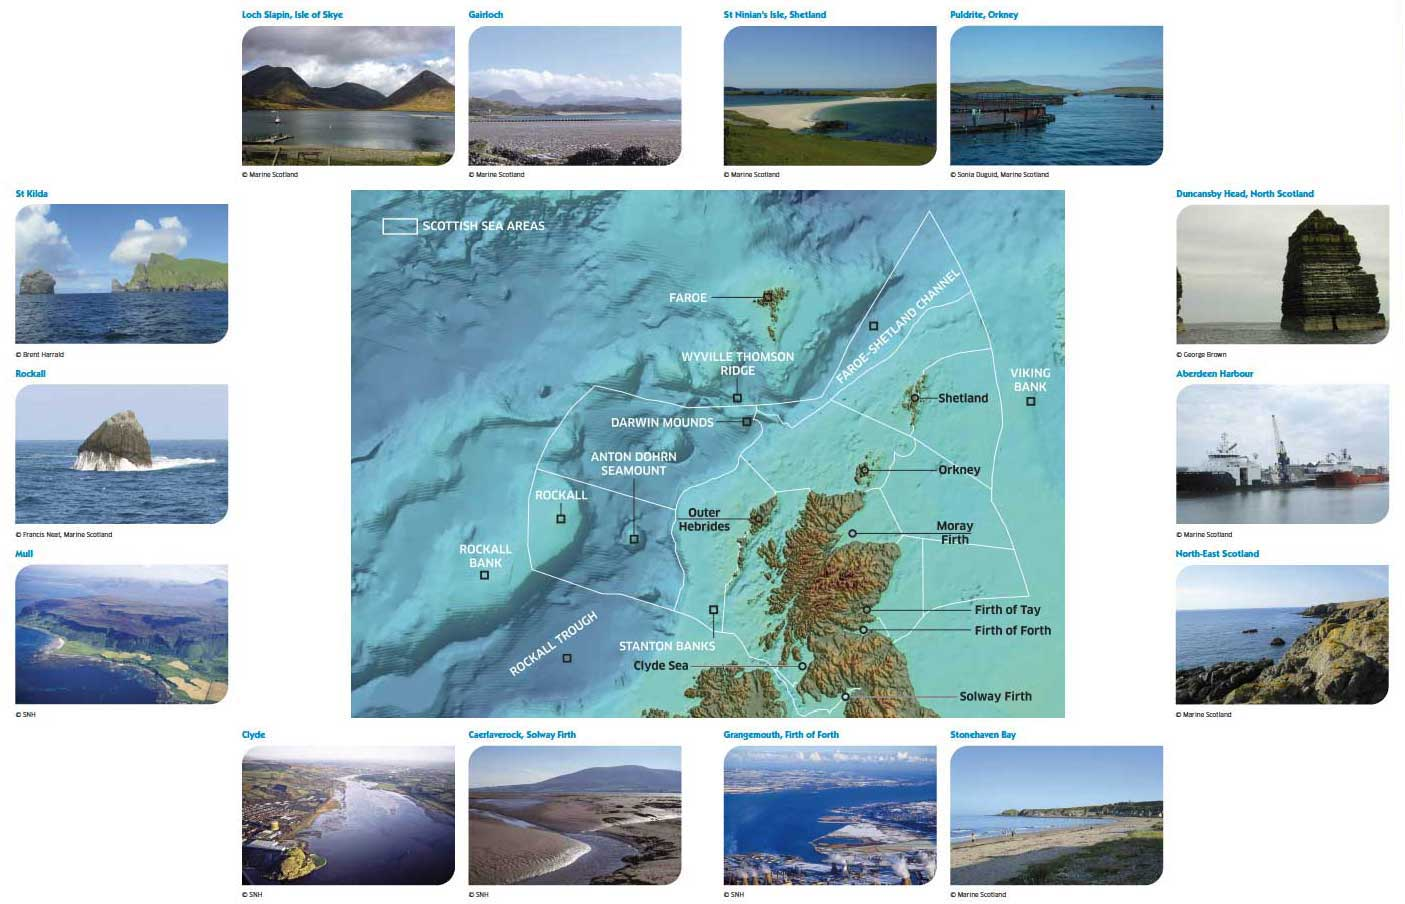 Bathymetry and selected features of the seas around Scotland